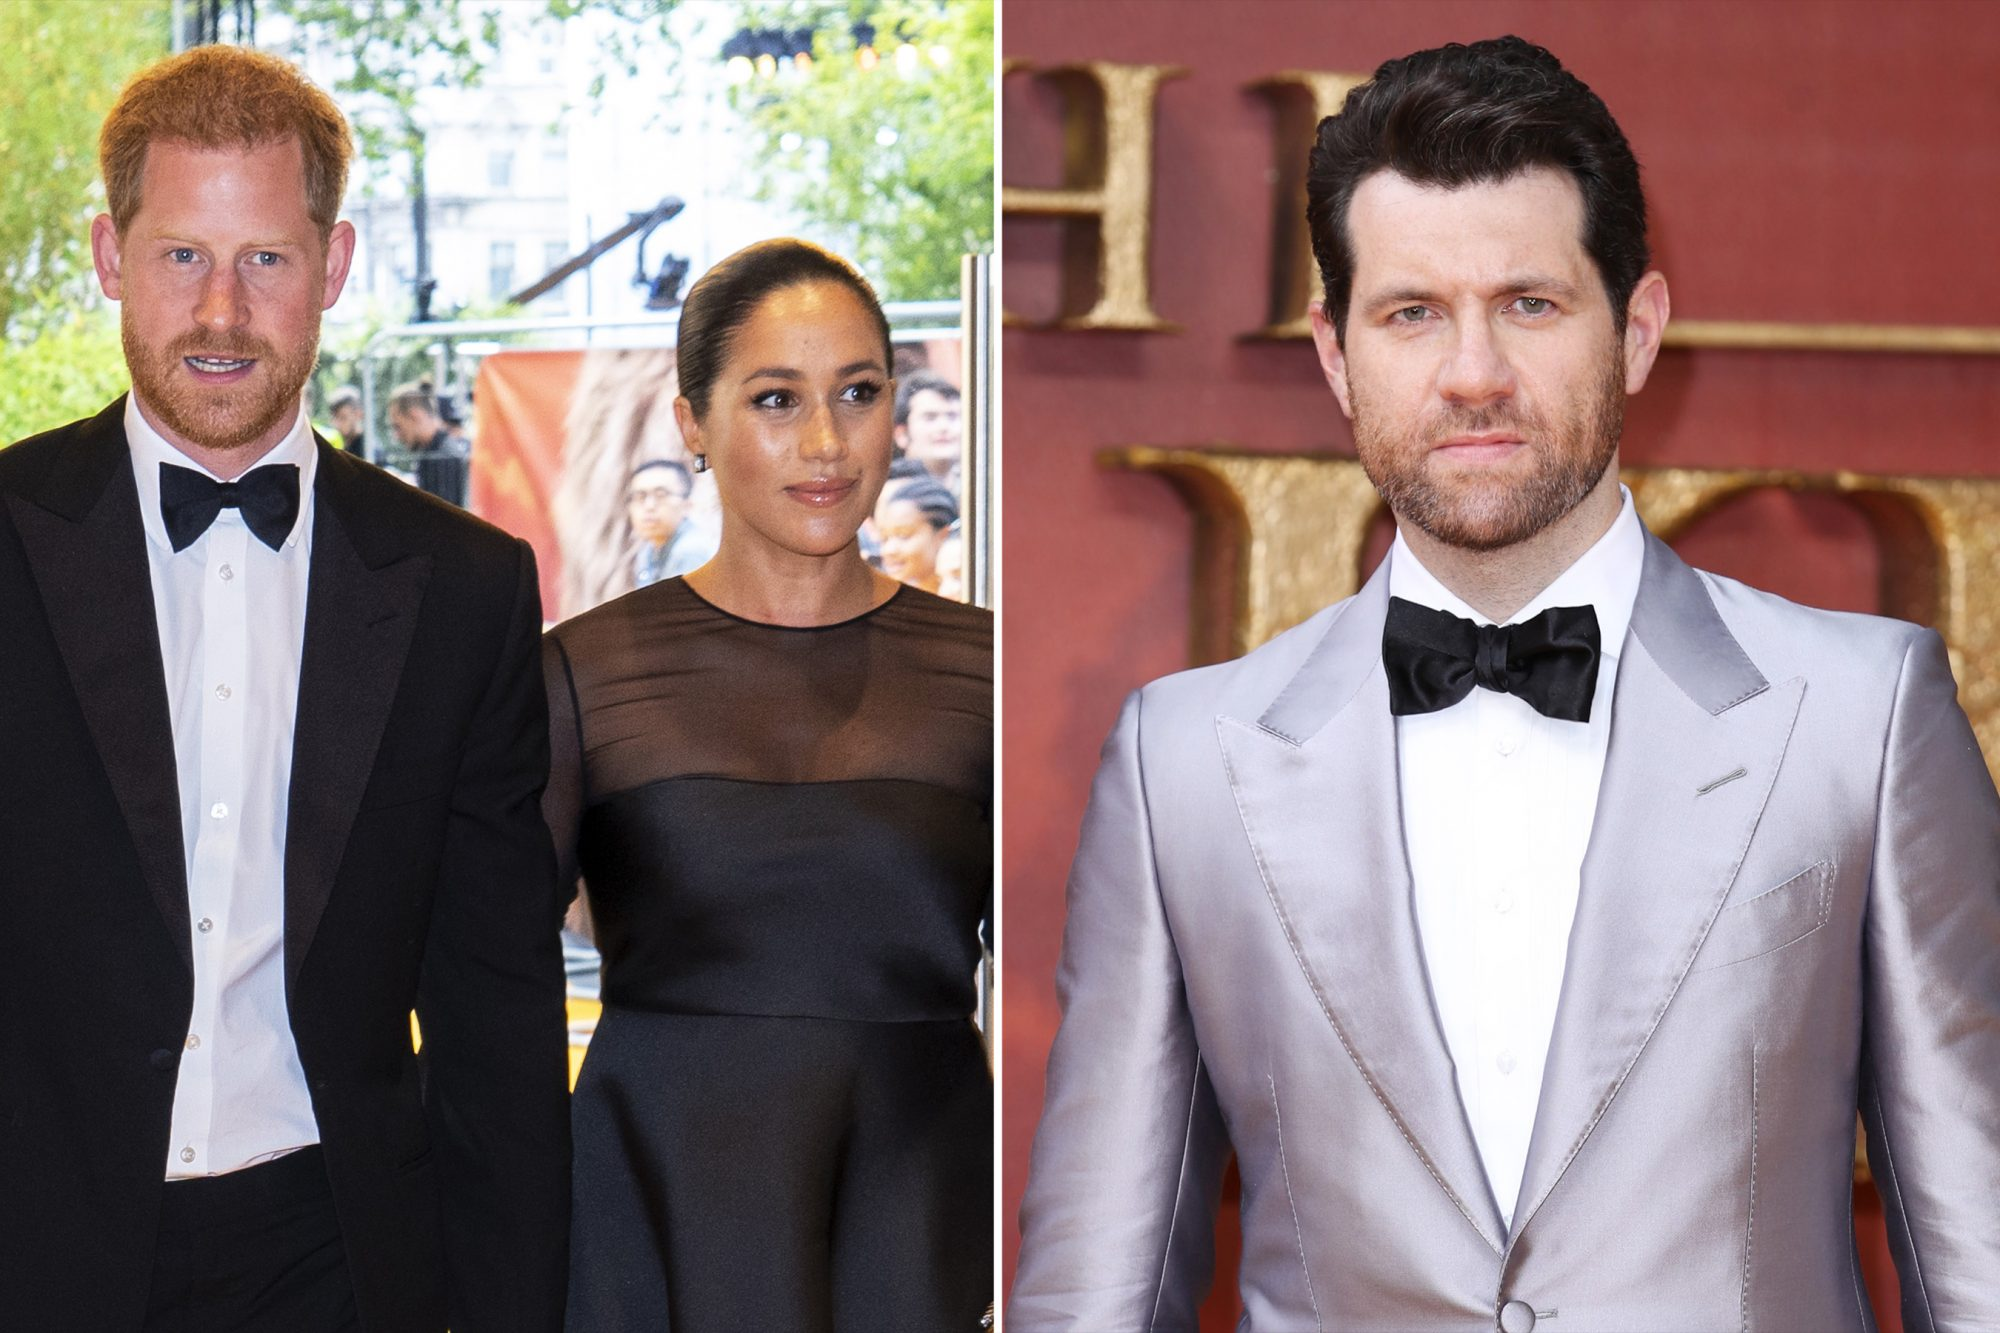 Prince Harry, Duke of Sussex and Meghan, Duchess of Sussex Billy Eichner